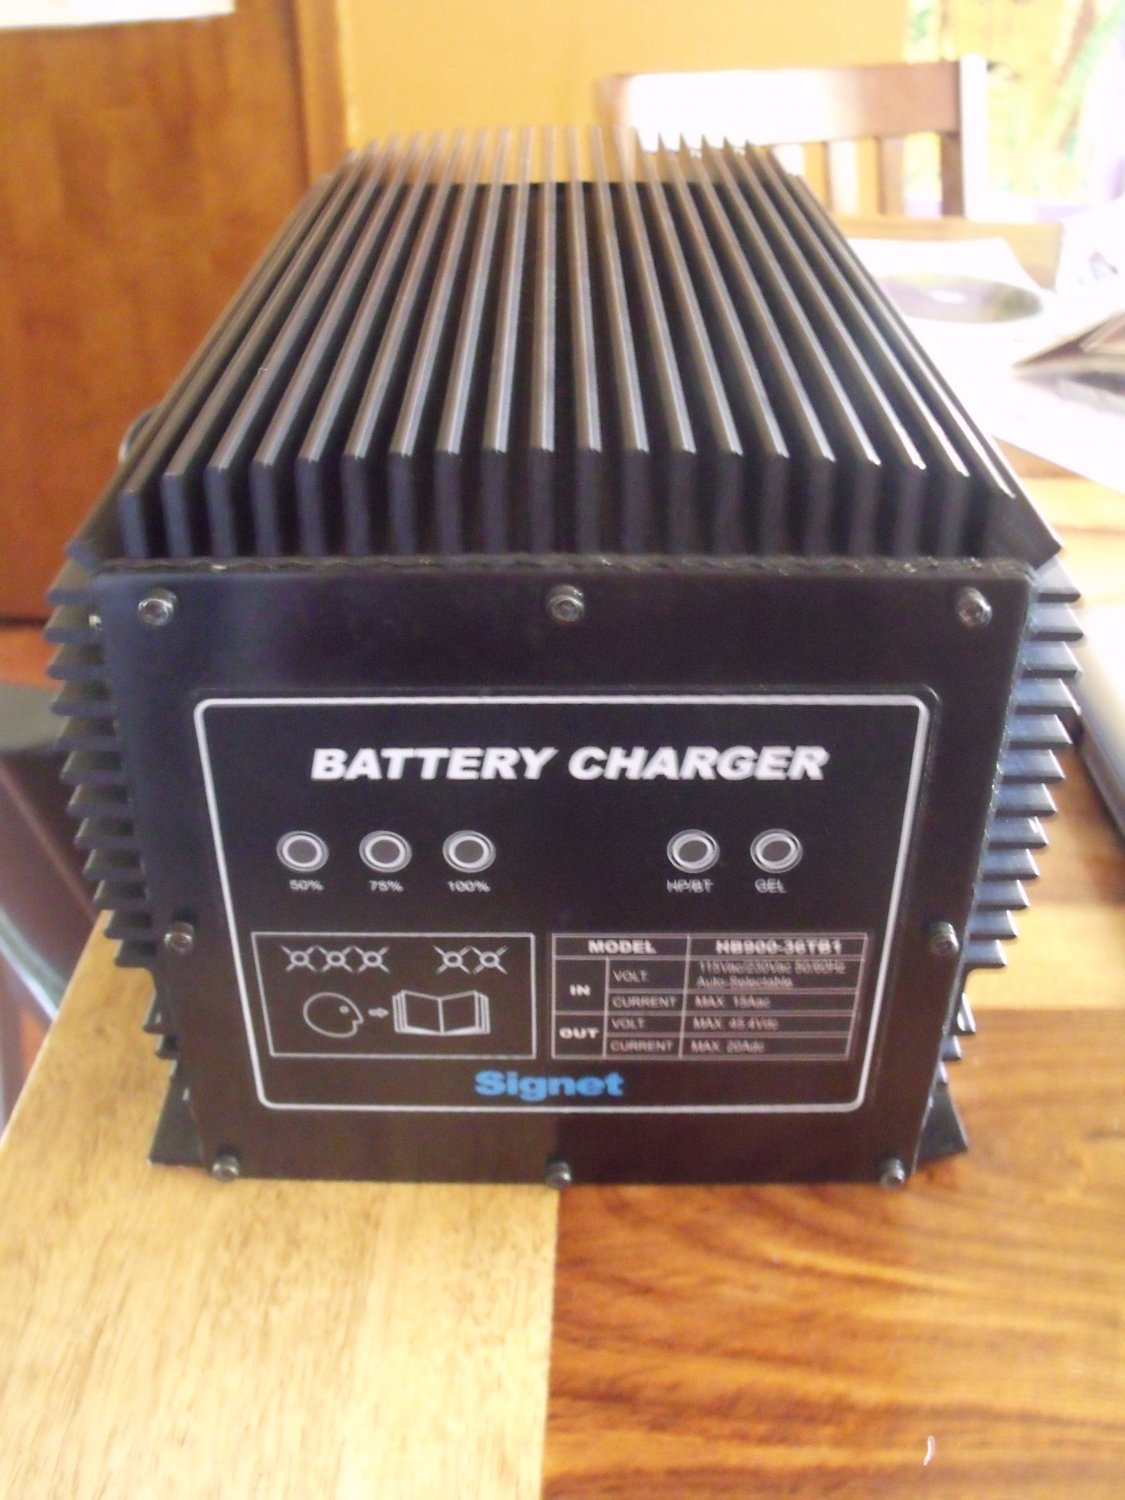 What Stores Accept Paypal Credit >> Signet HB900-36TB1 Battery Charger